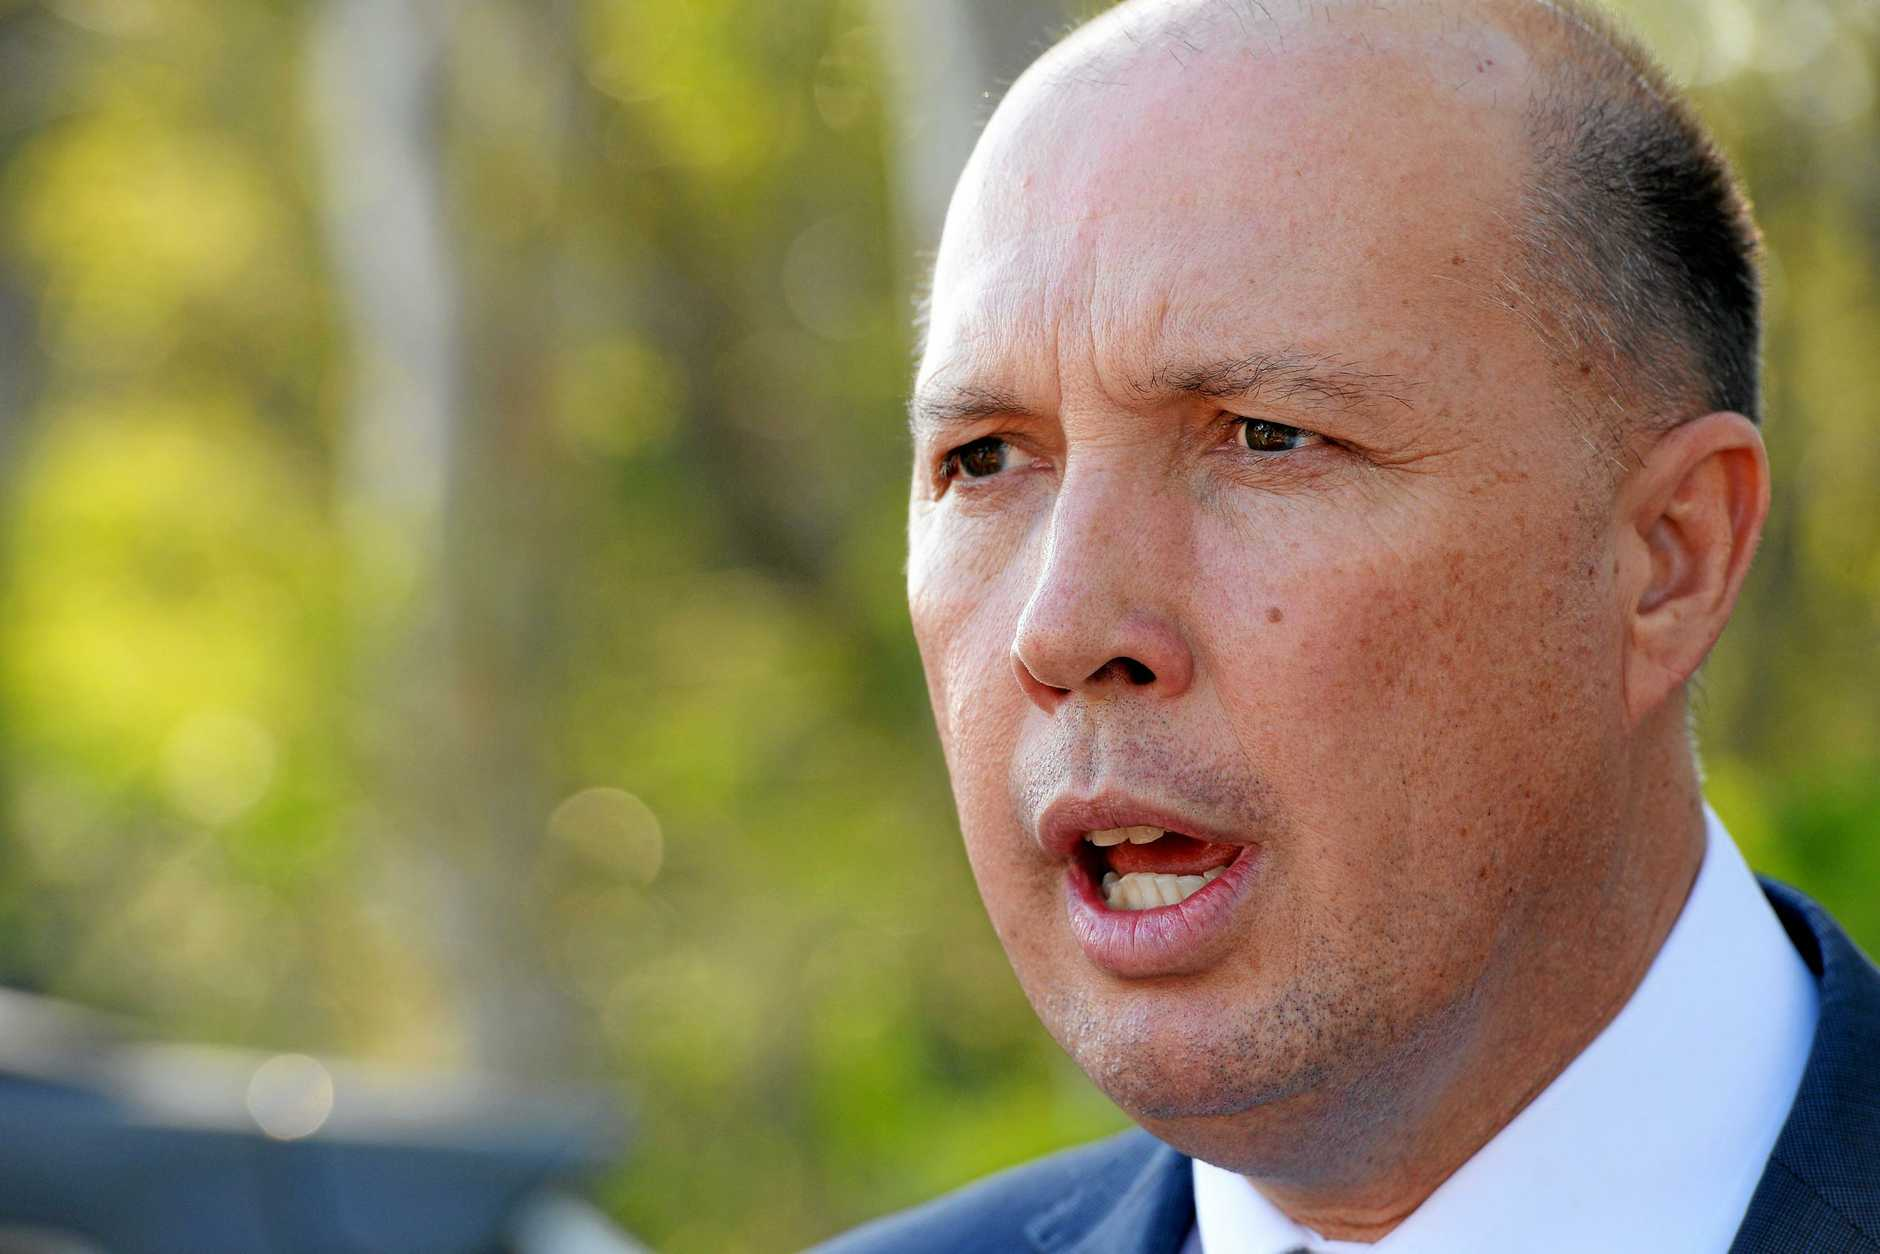 PETER Dutton now has a target on his back but remains extremely popular among far right conservatives in Queensland who consider the new Prime Minister, Scott Morrison, a leftie.